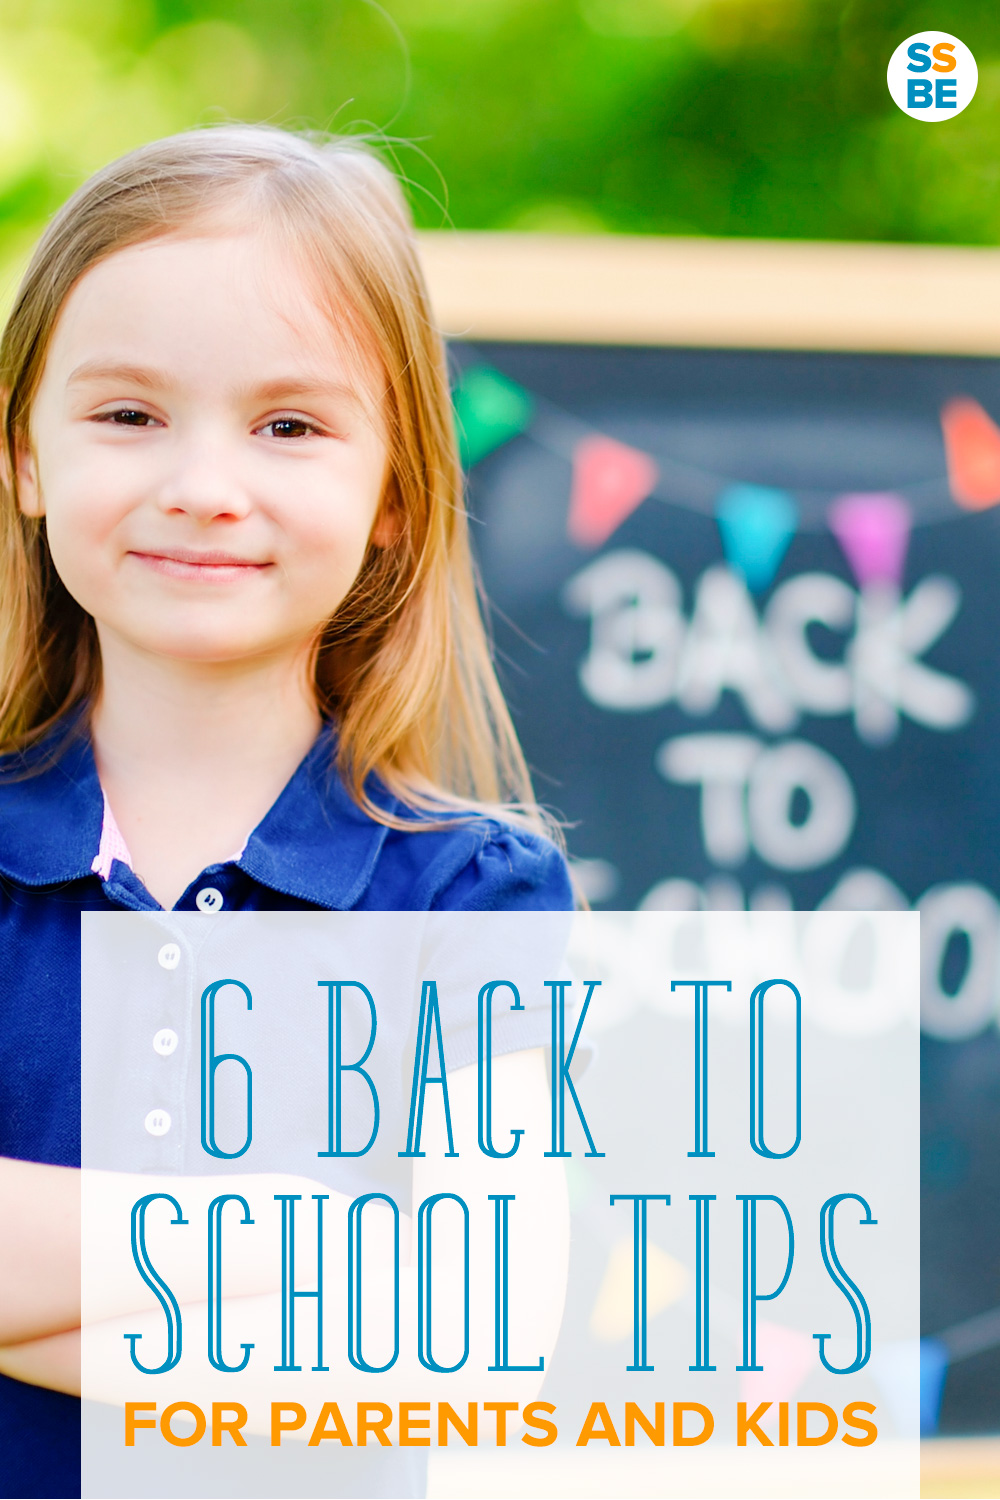 Getting ready to go back to school? Read these 6 useful back to school tips for parents and kids for a smooth transition this school year.